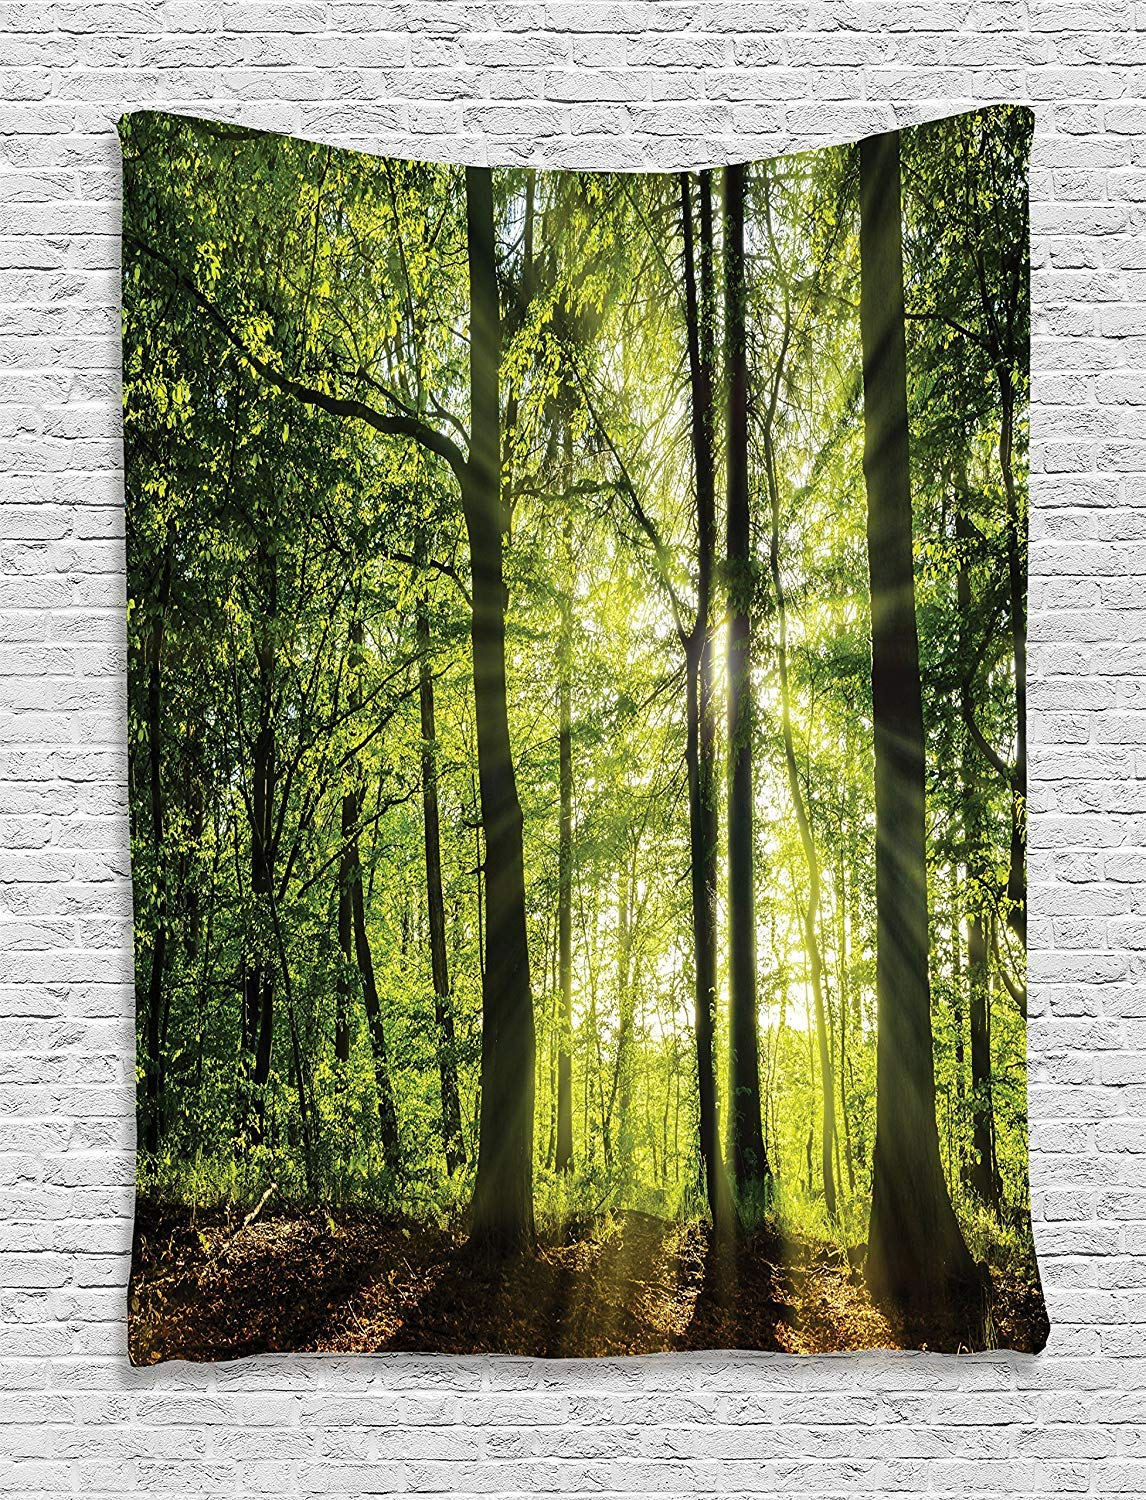 Ambesonne Farm House Decor Collection Green Brown tap/_14626/_Forest/_Sun/_Beam/_06.17/_40x60 Bedroom Living Room Dorm Wall Hanging Tapestry Sunny Forest in The Springtime with Sunbeams Rural Areas Jungle Nature Photo Art